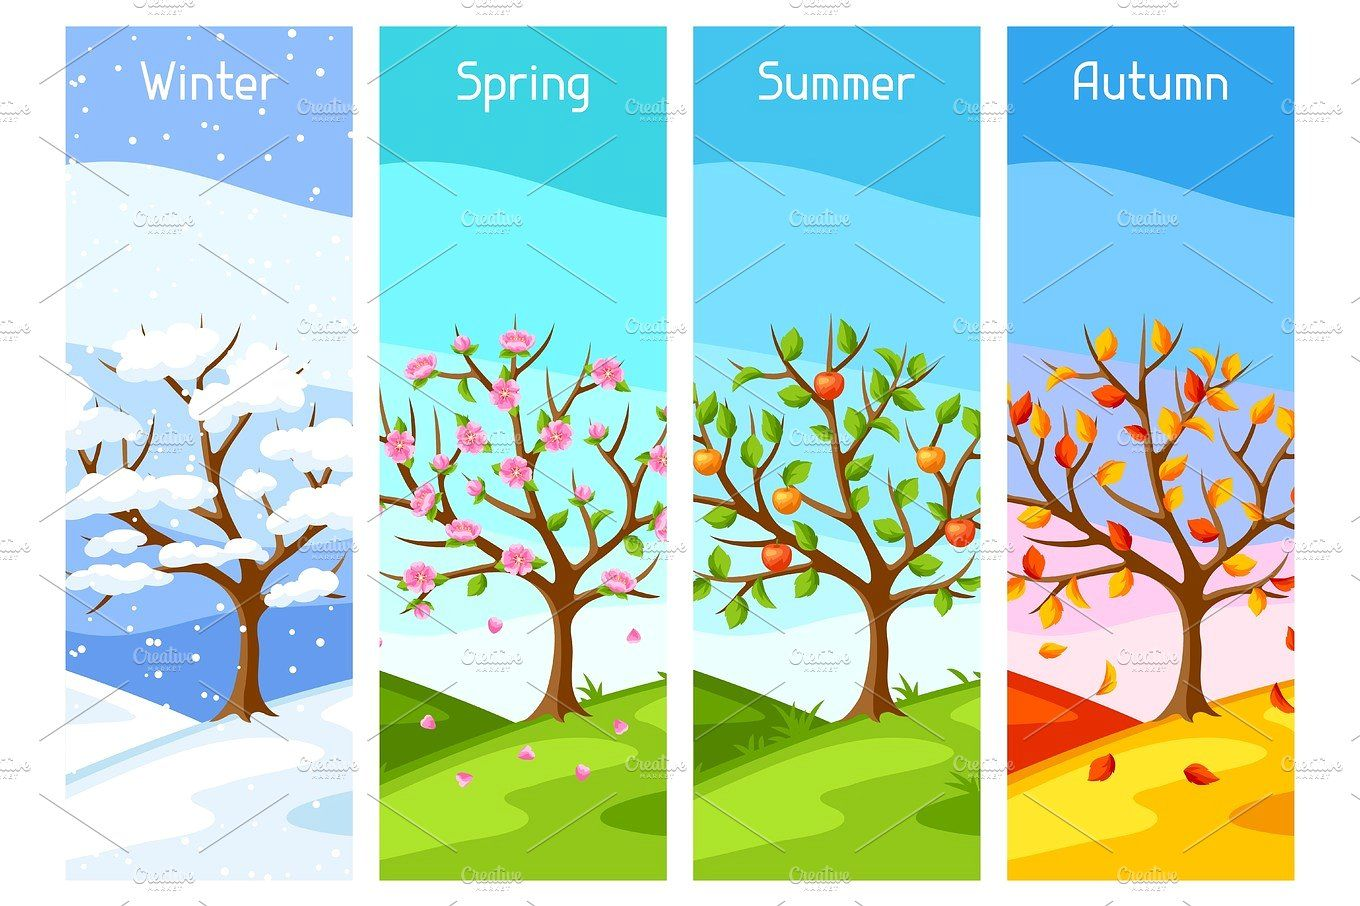 Four Seasons Illustration Of Tree And Landscape In Winter